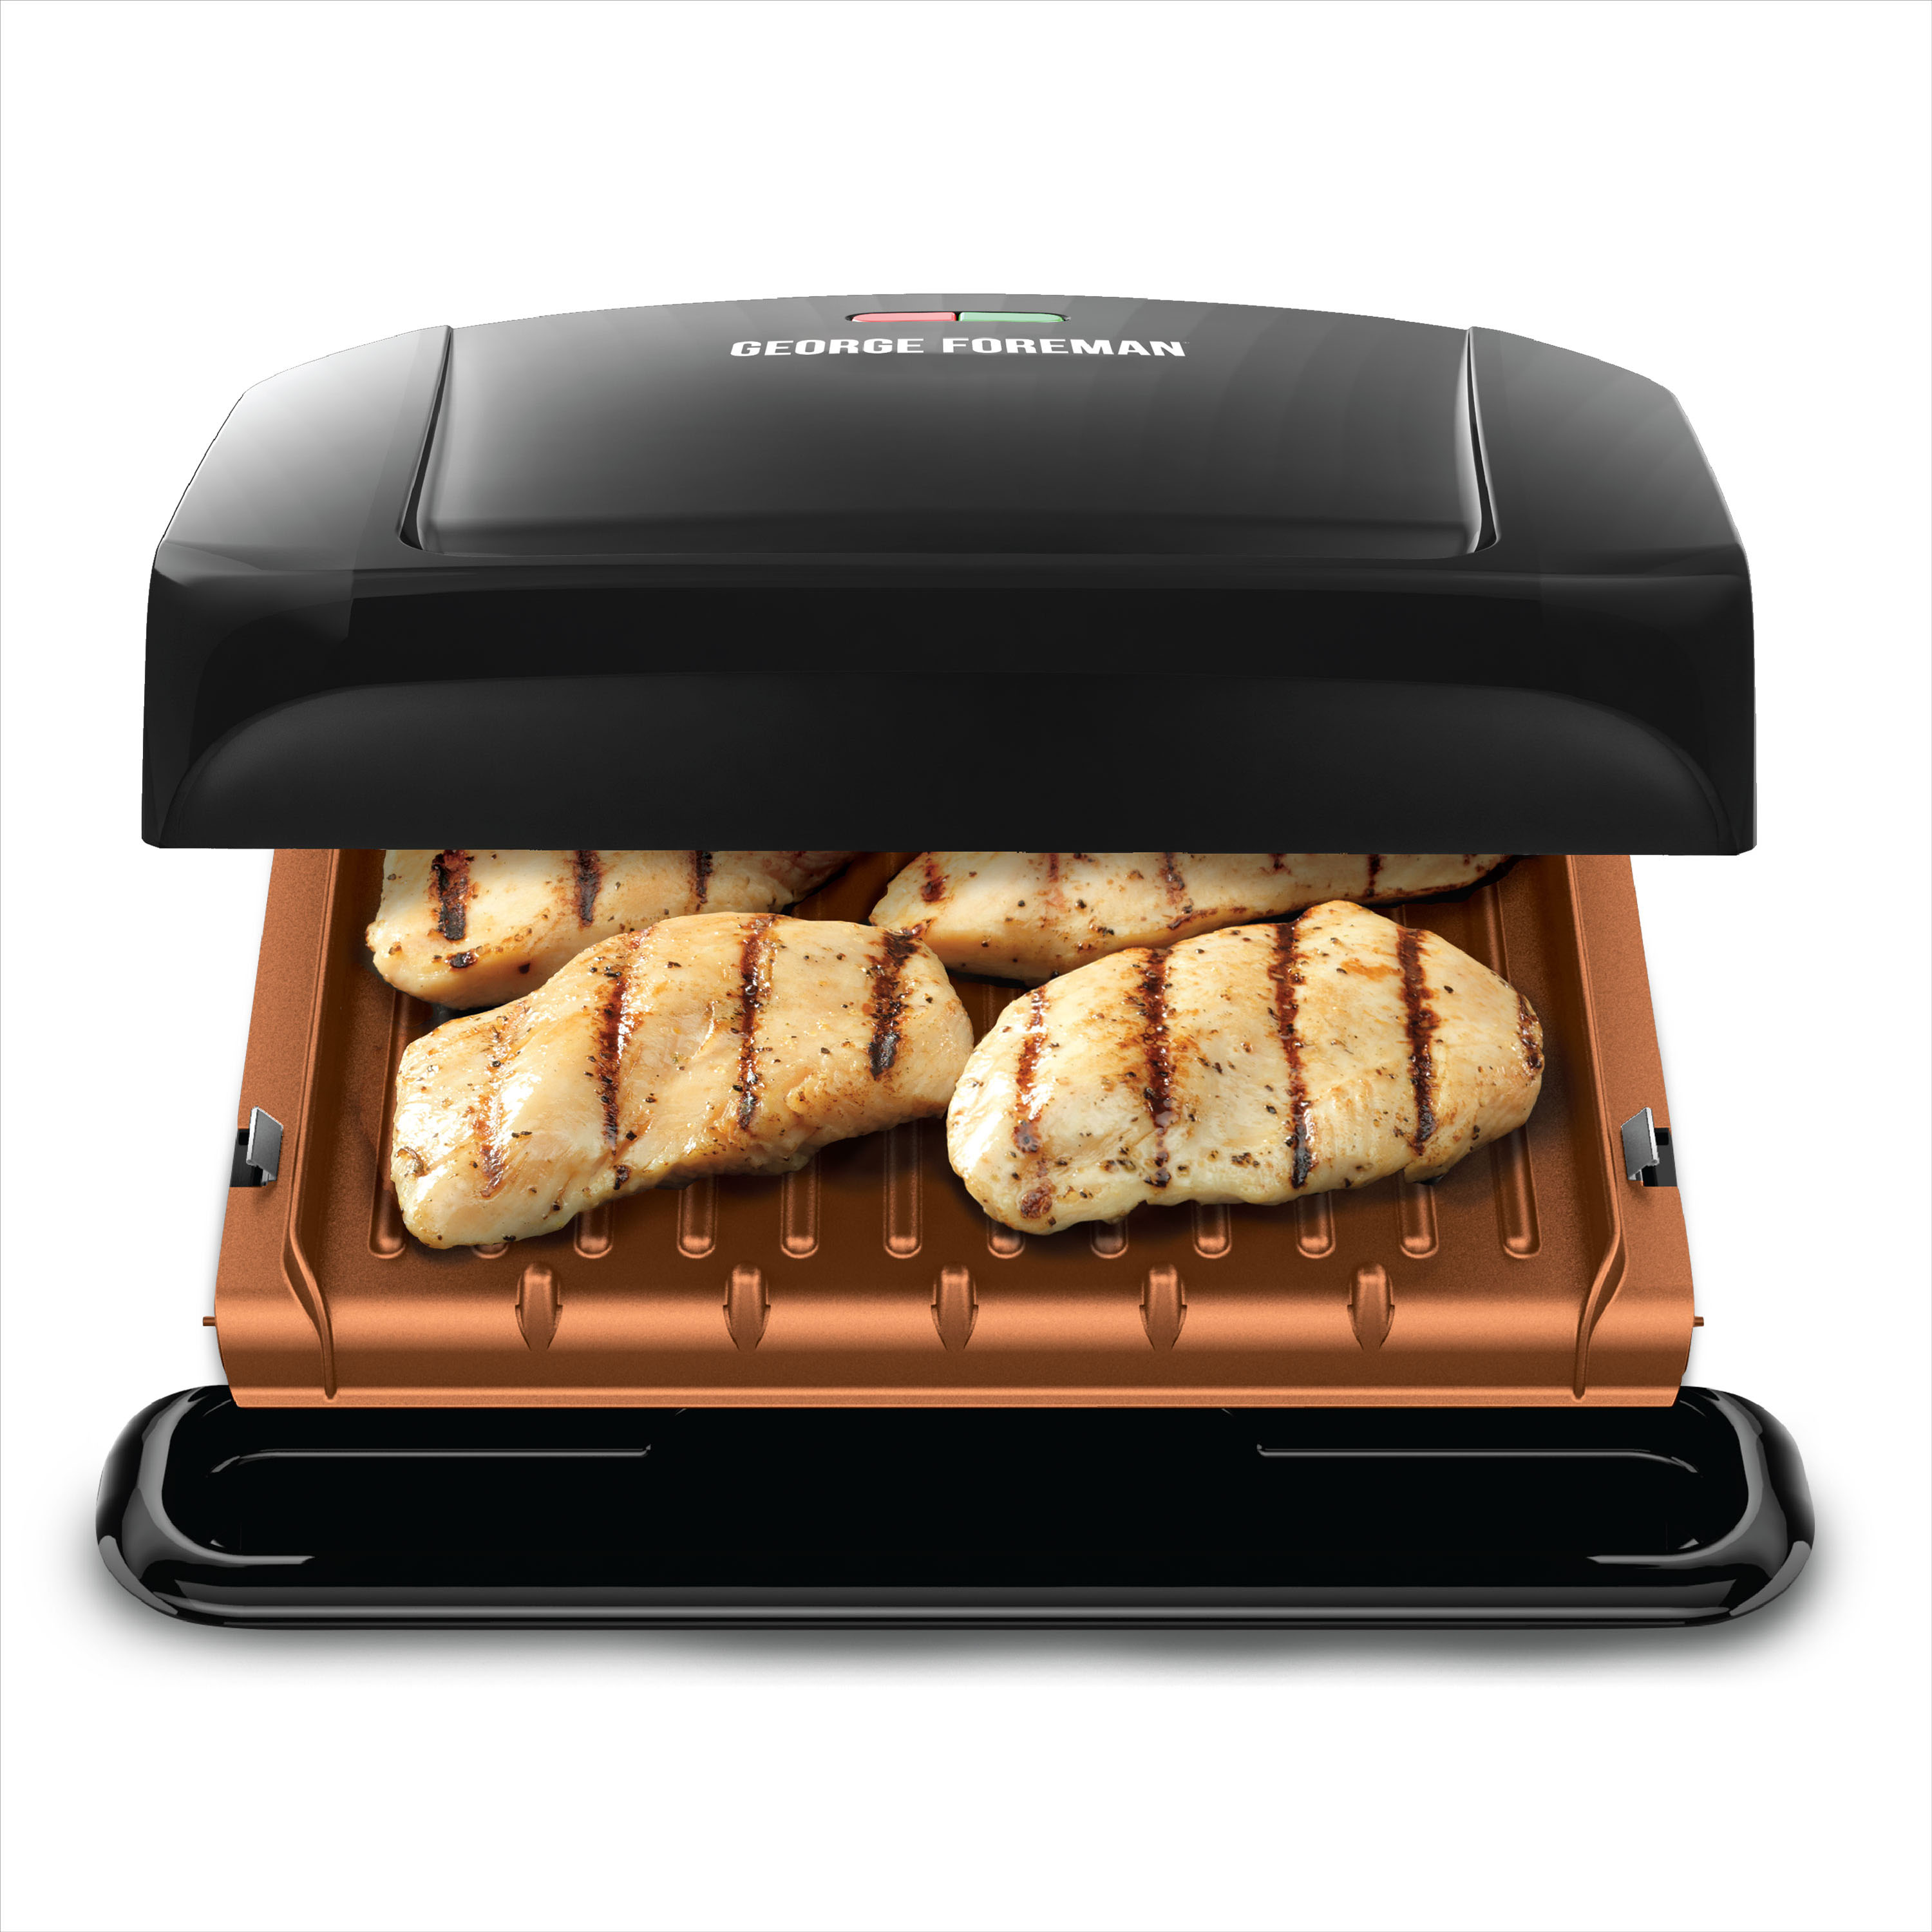 George Foreman 4-Serving Copper Color Removable Plate Grill, Electric Indoor Grill and Panini Press, Black/Copper, GRP460BXC